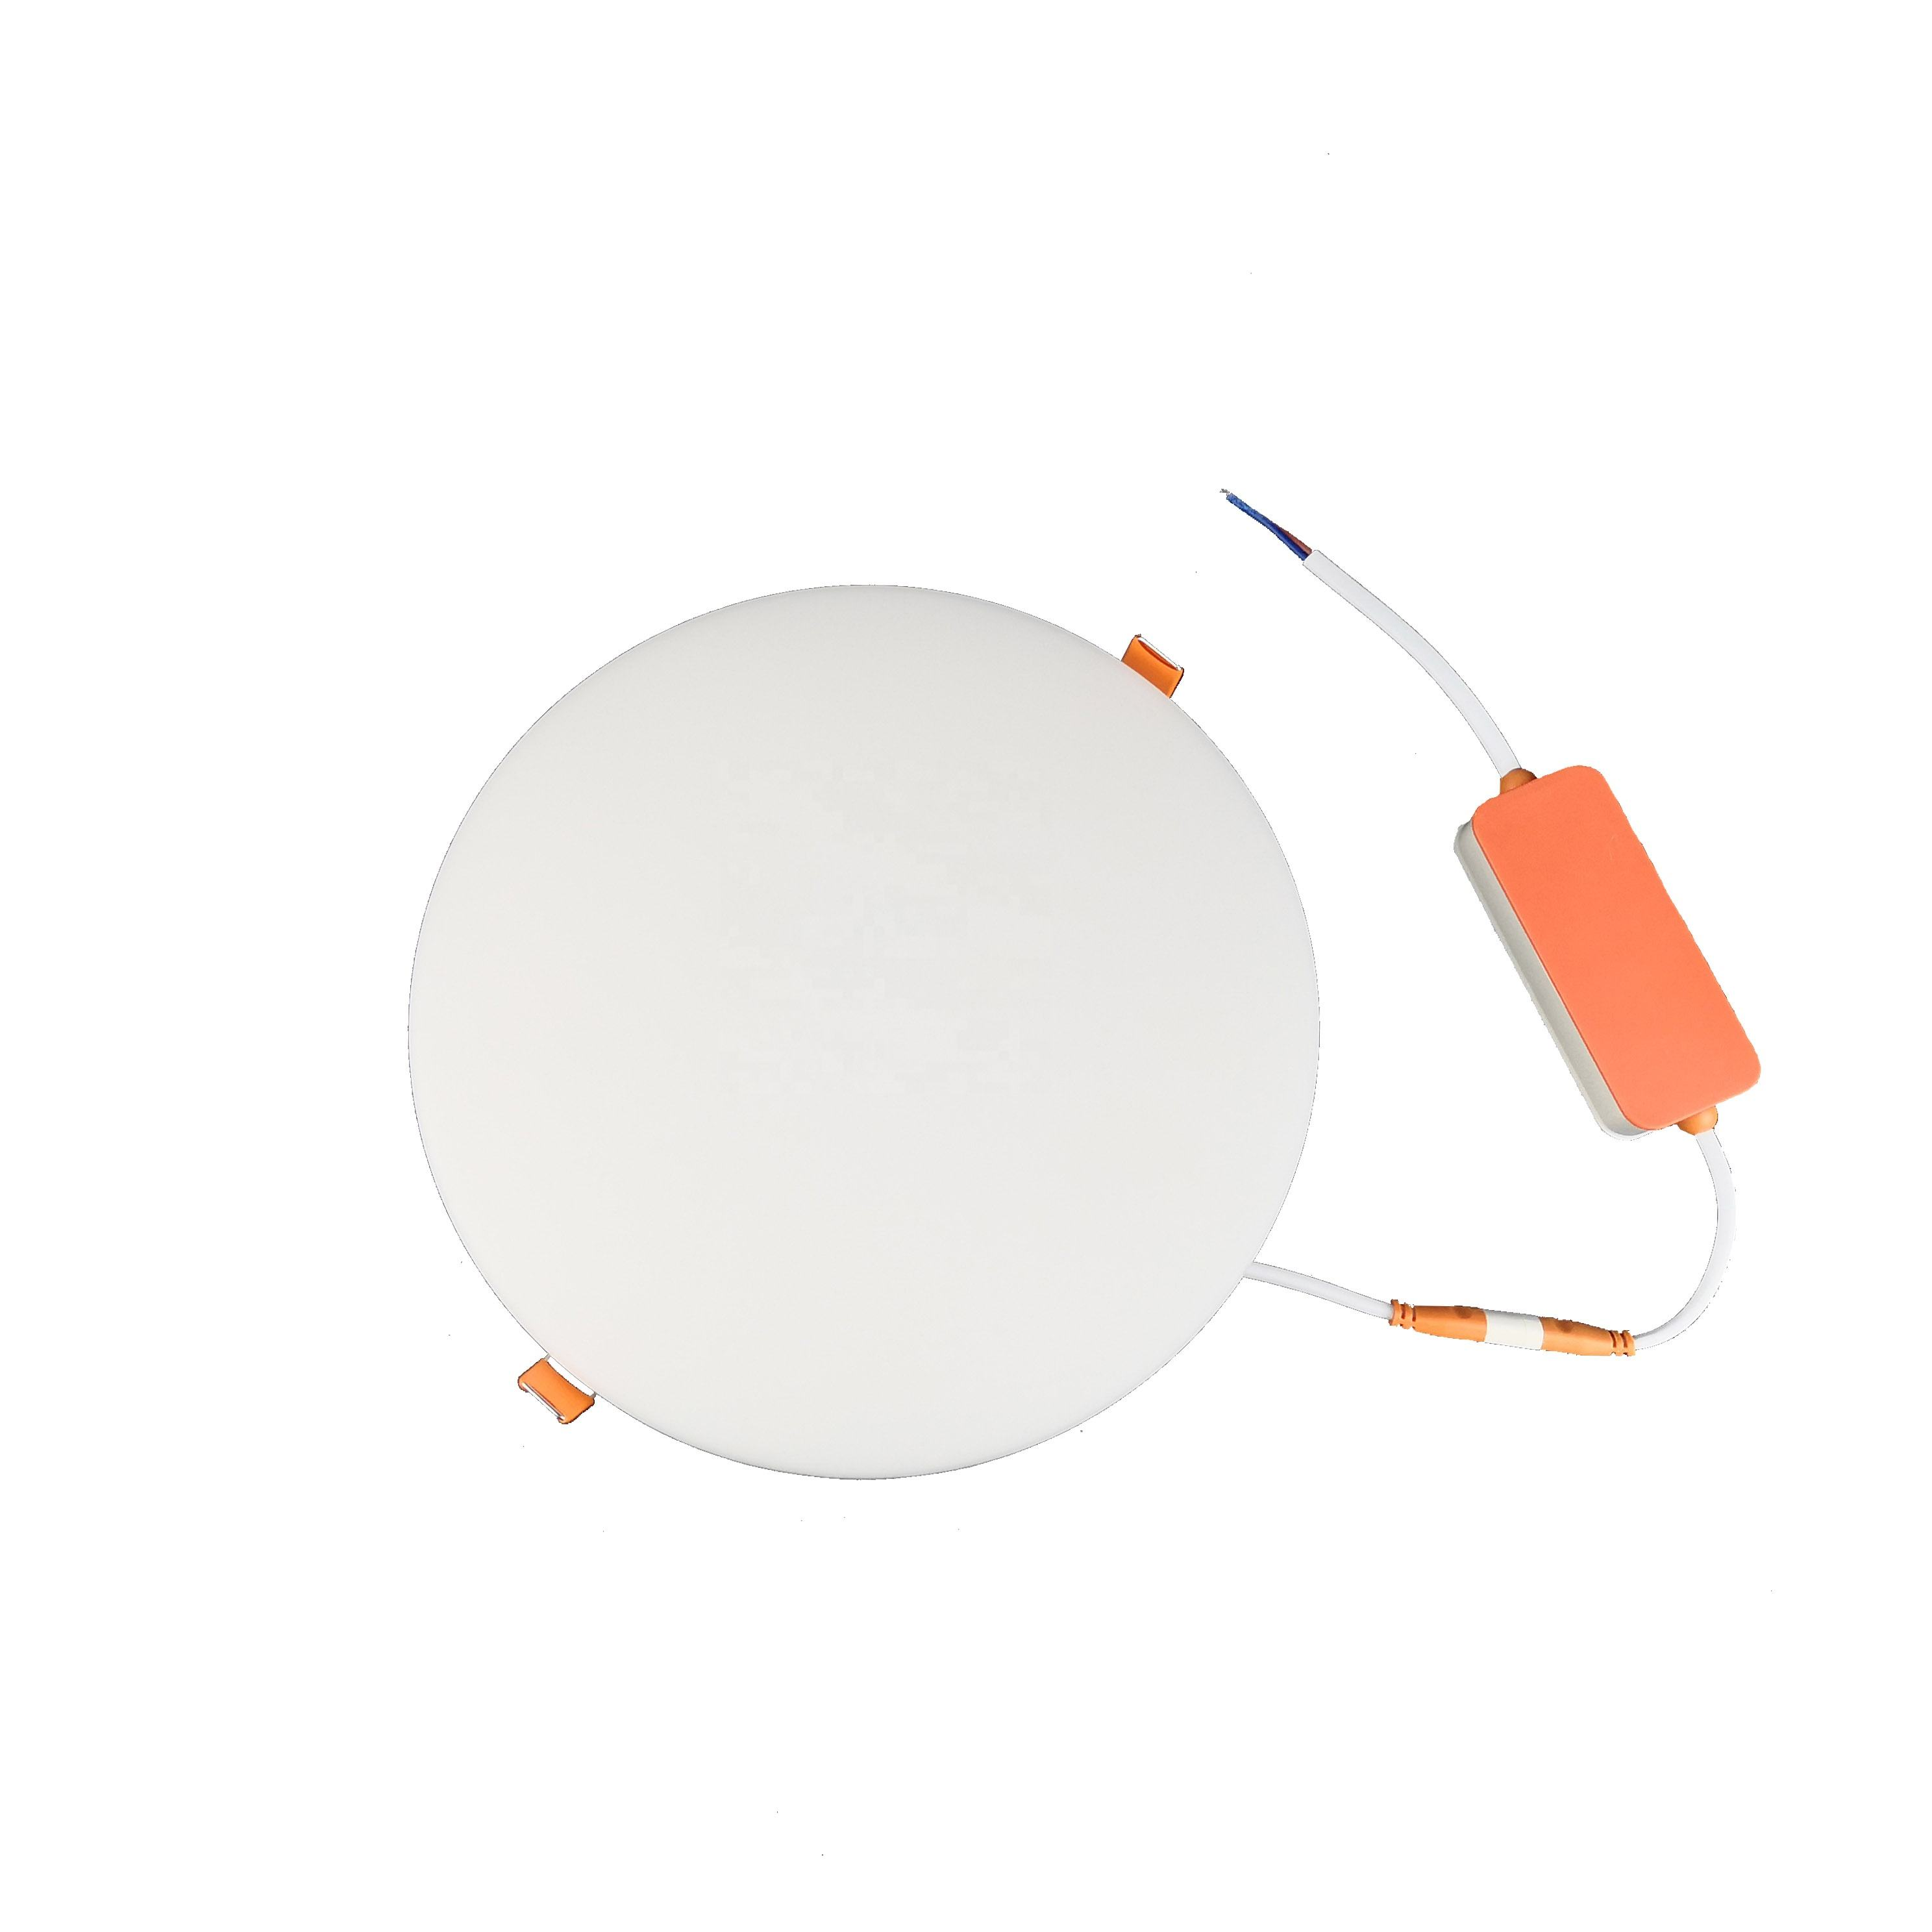 Office and home 18w frameless round led panel light